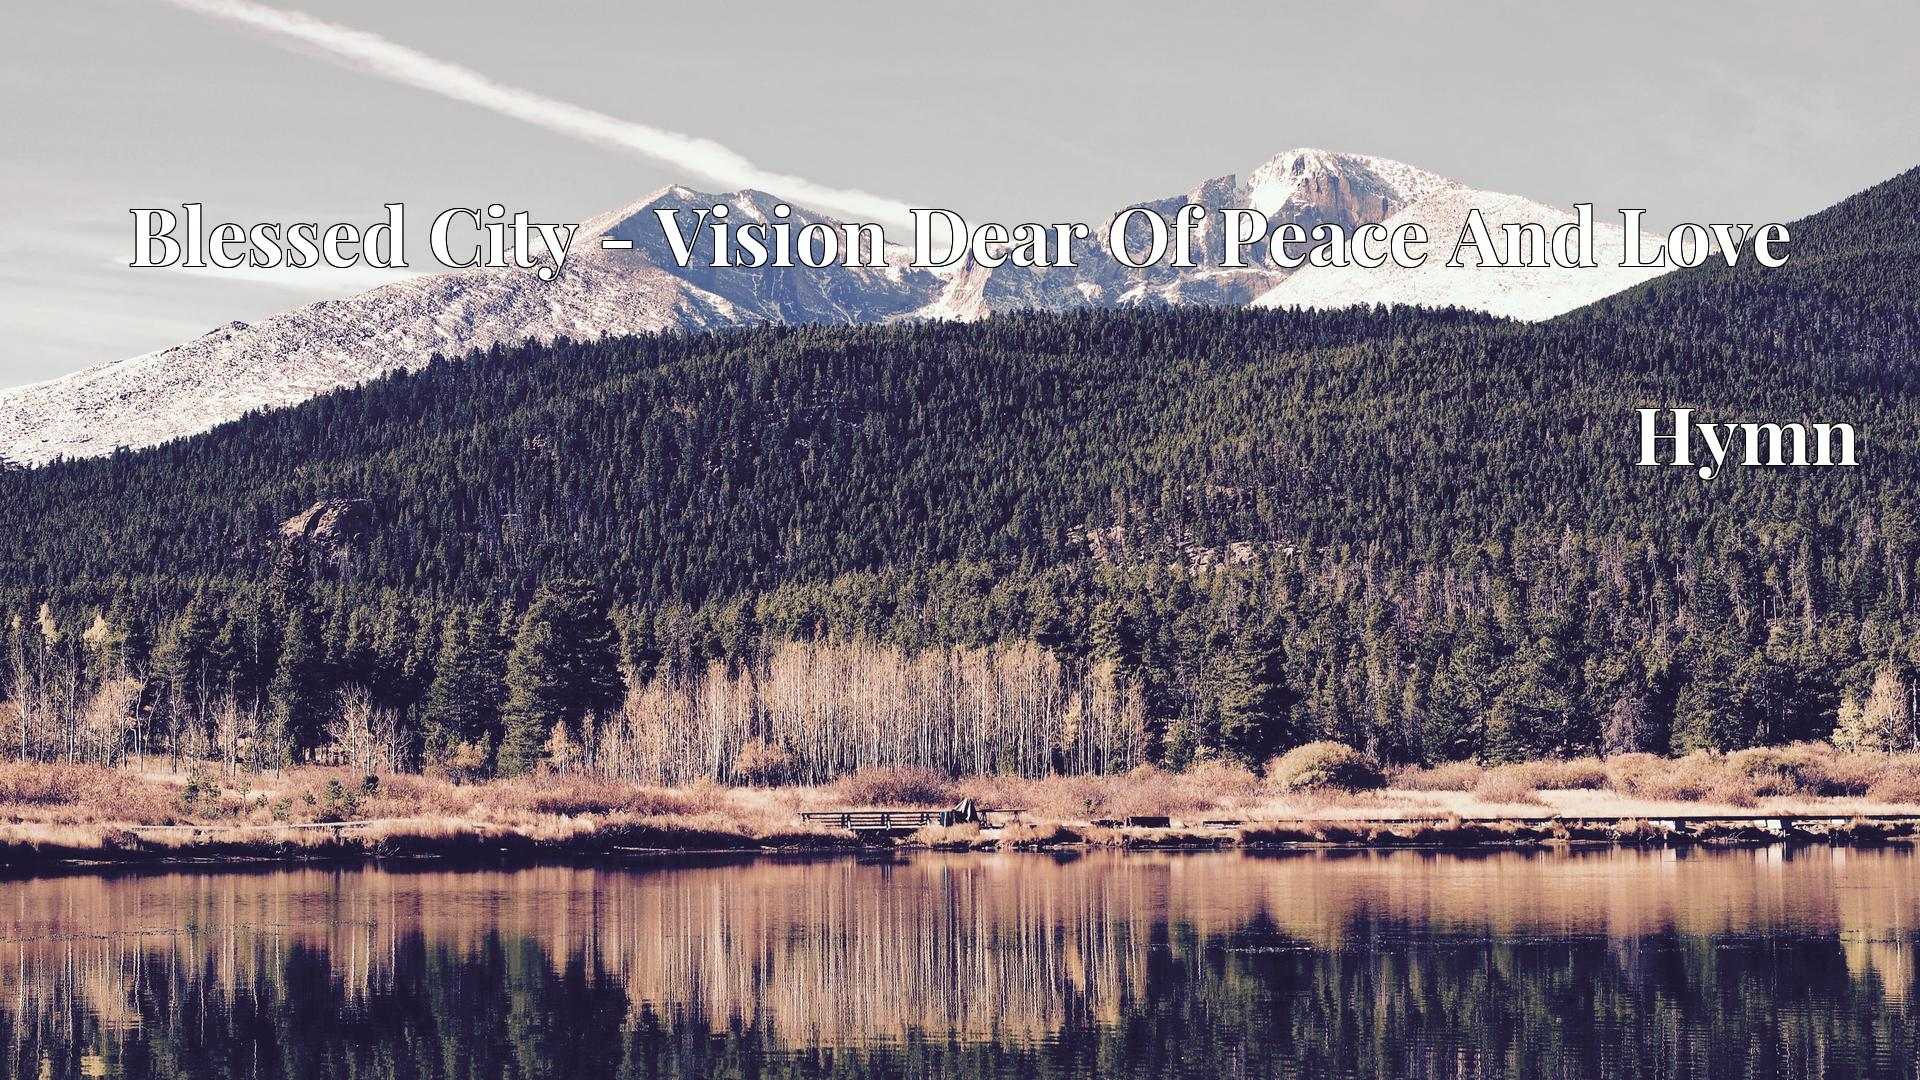 Blessed City - Vision Dear Of Peace And Love Hymn